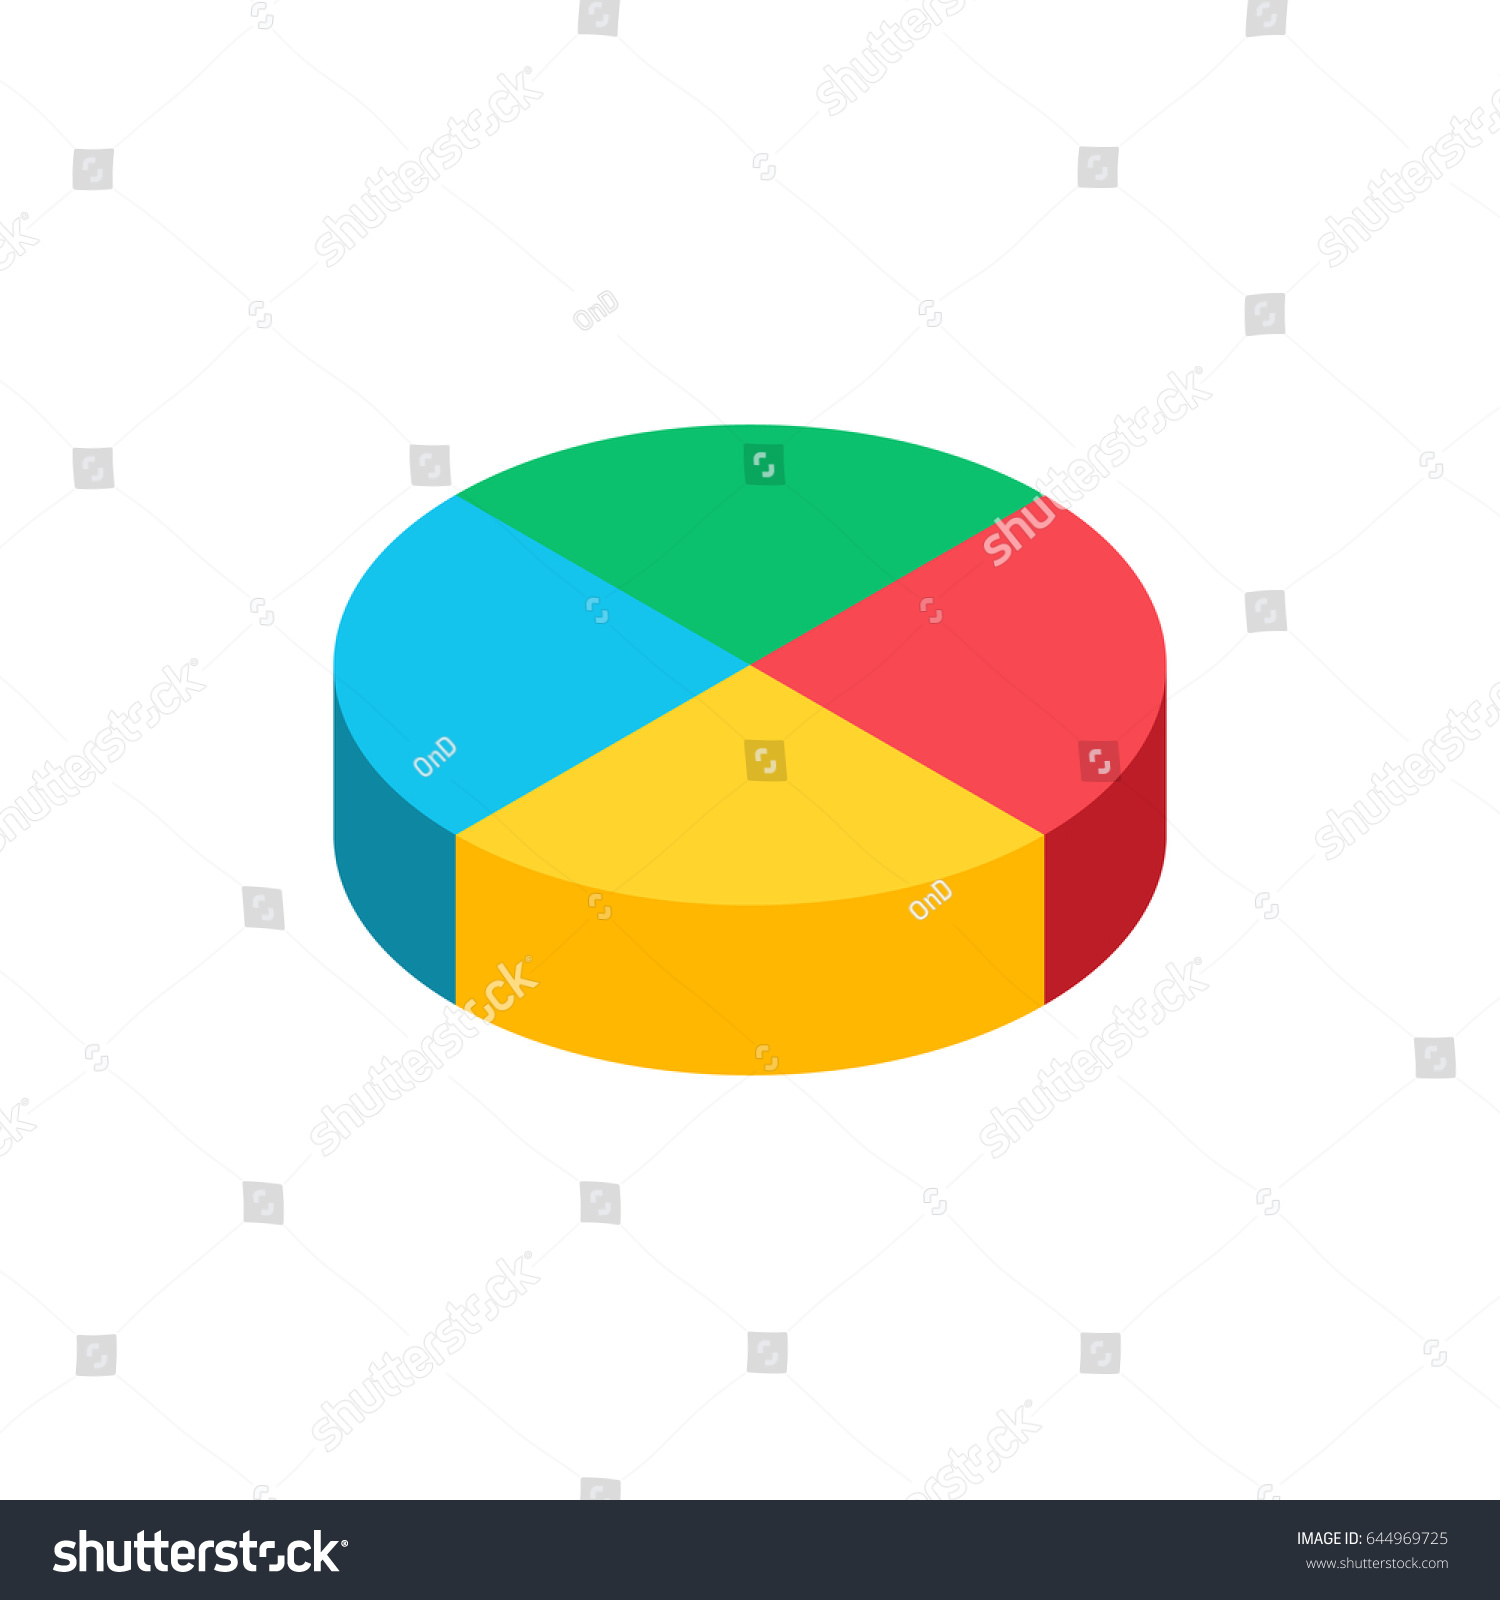 Bulk isometric pie graph template realistic stock illustration bulk isometric pie graph template realistic stock illustration 644969725 shutterstock nvjuhfo Gallery